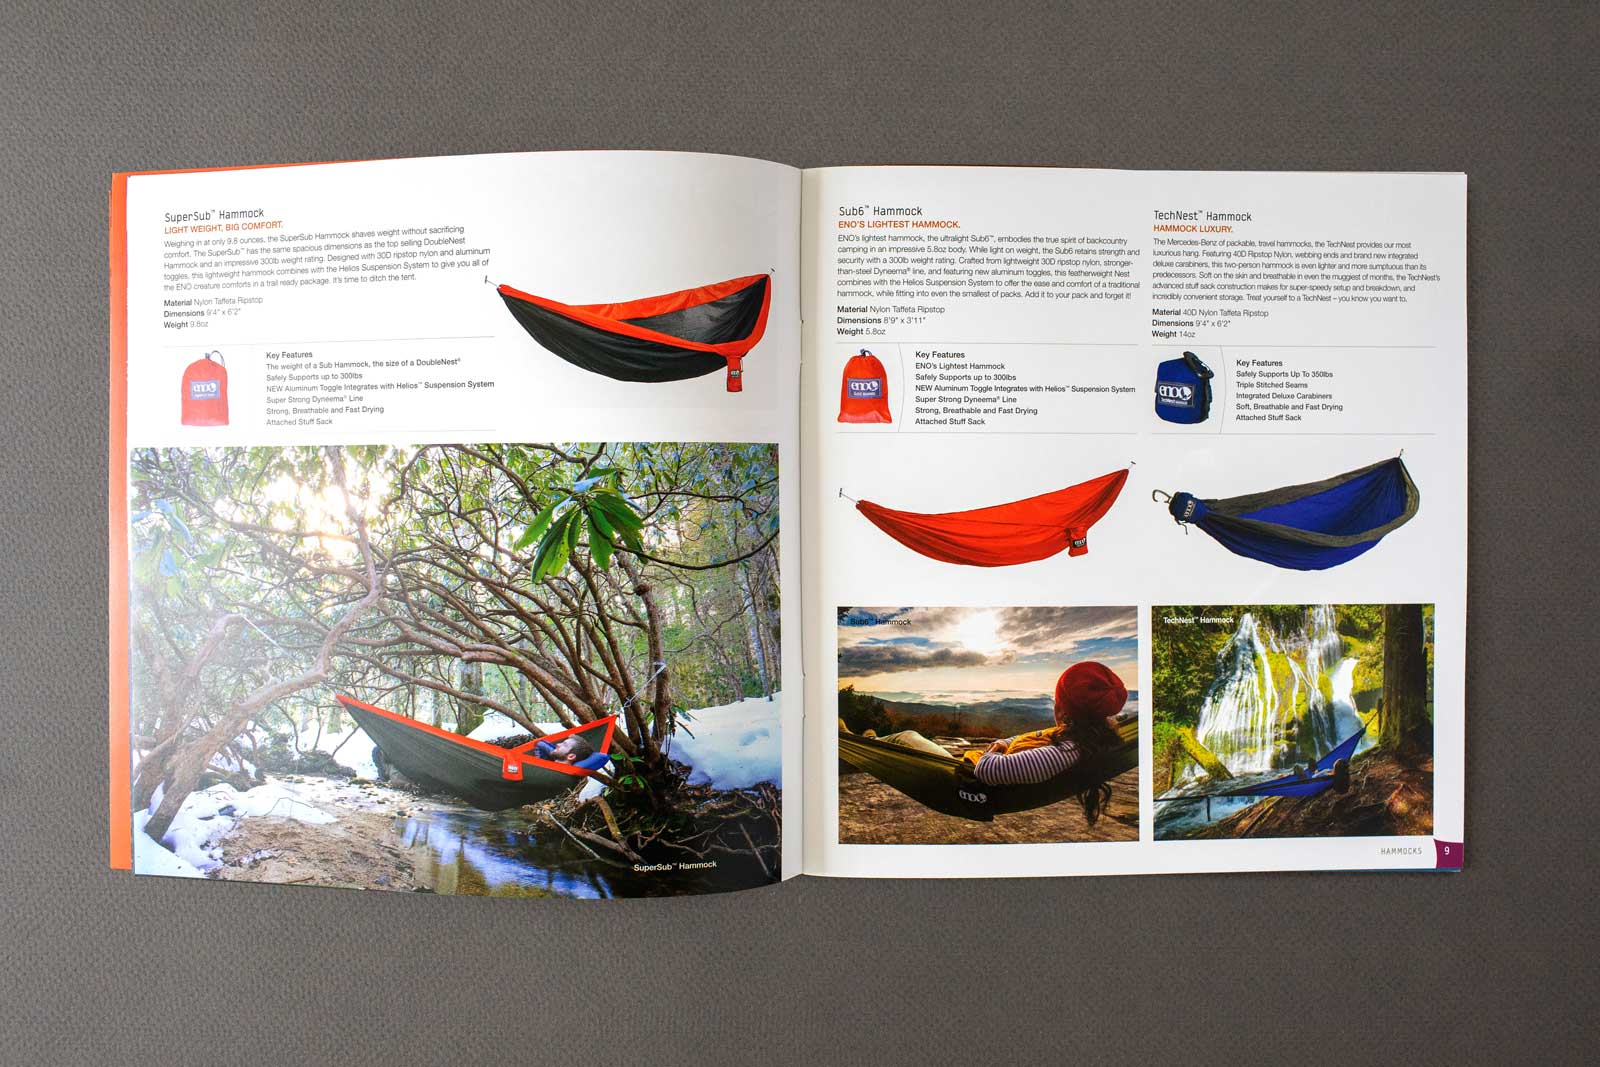 ENO Hammocks catalog spread showing hiker in hammock over stream with snow on the ground, sunset, and waterfall.